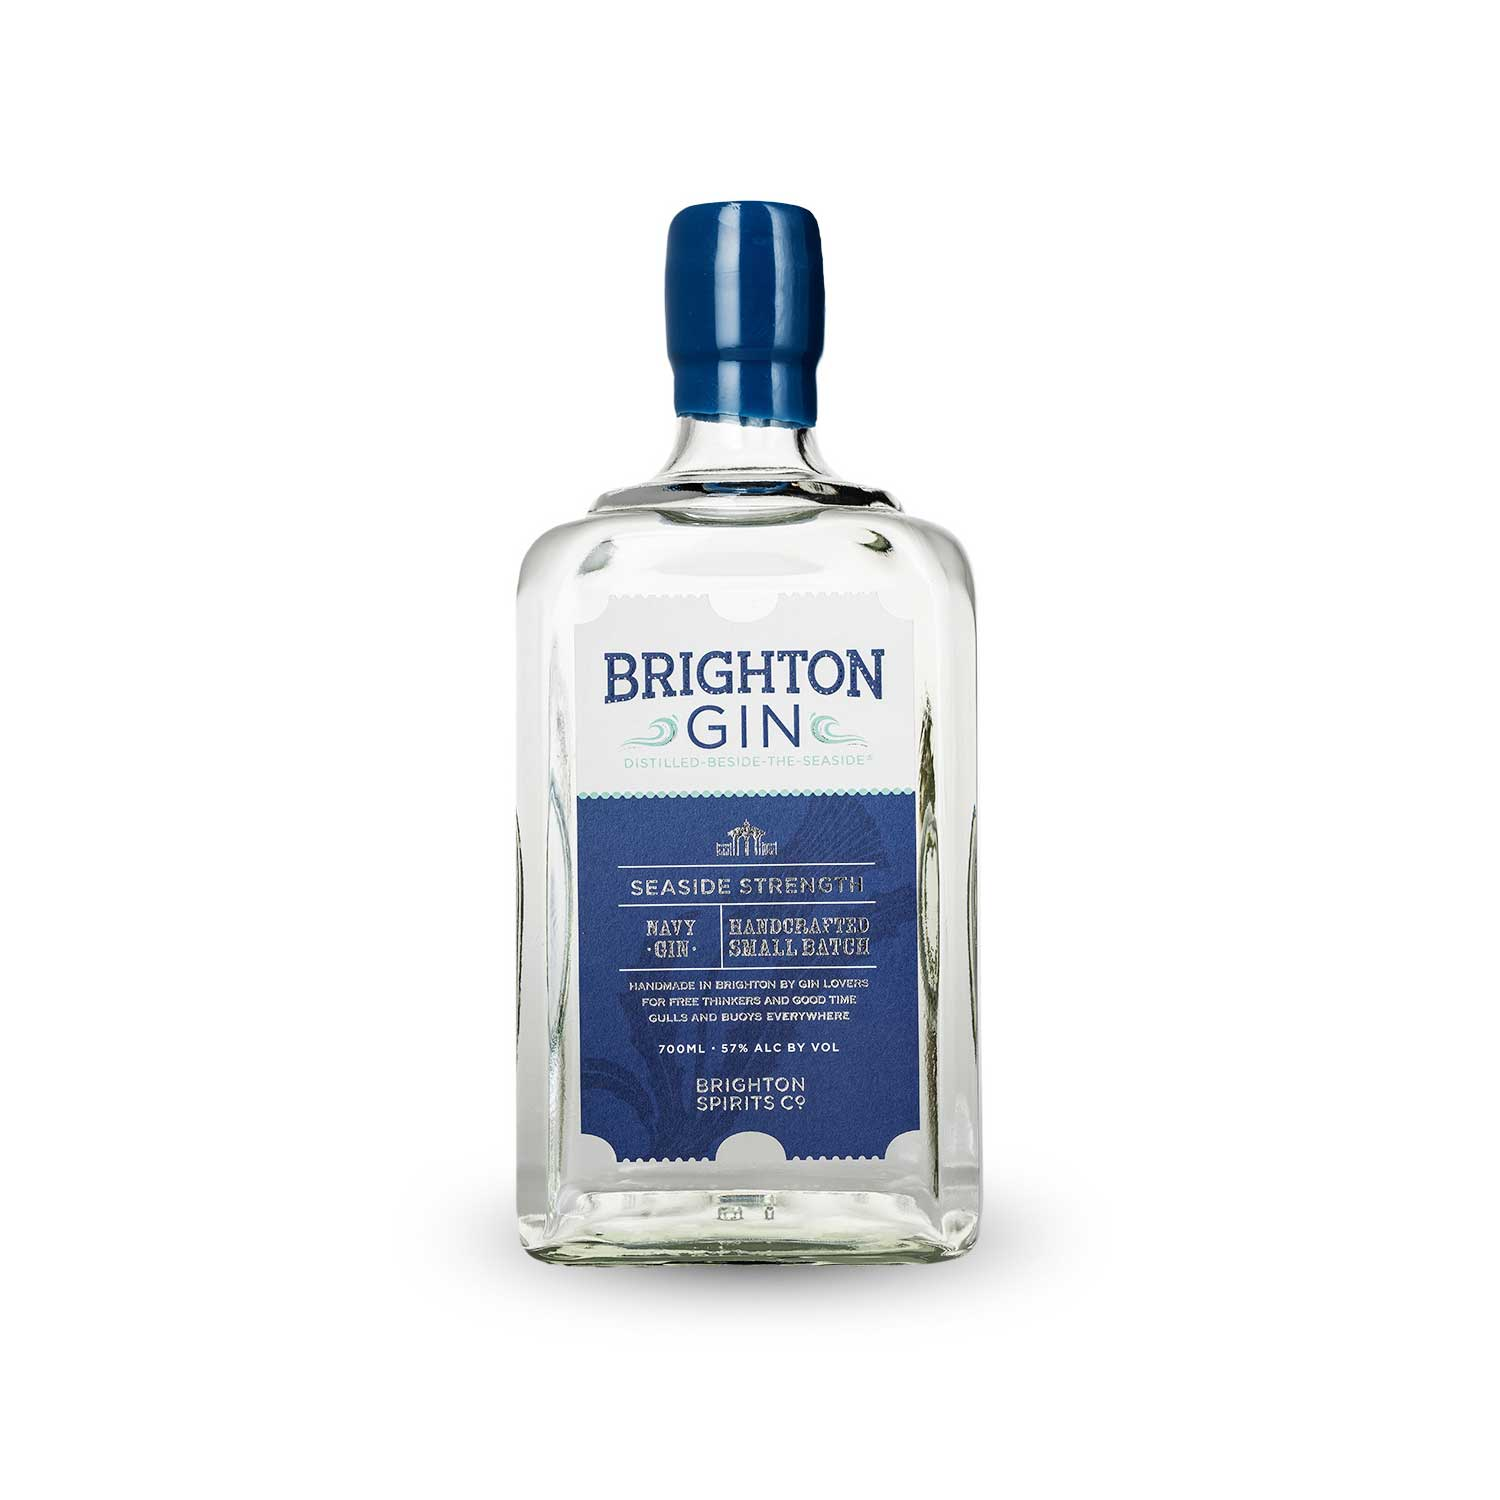 Brighton Gin Seaside Navy Strength Gin Bottle